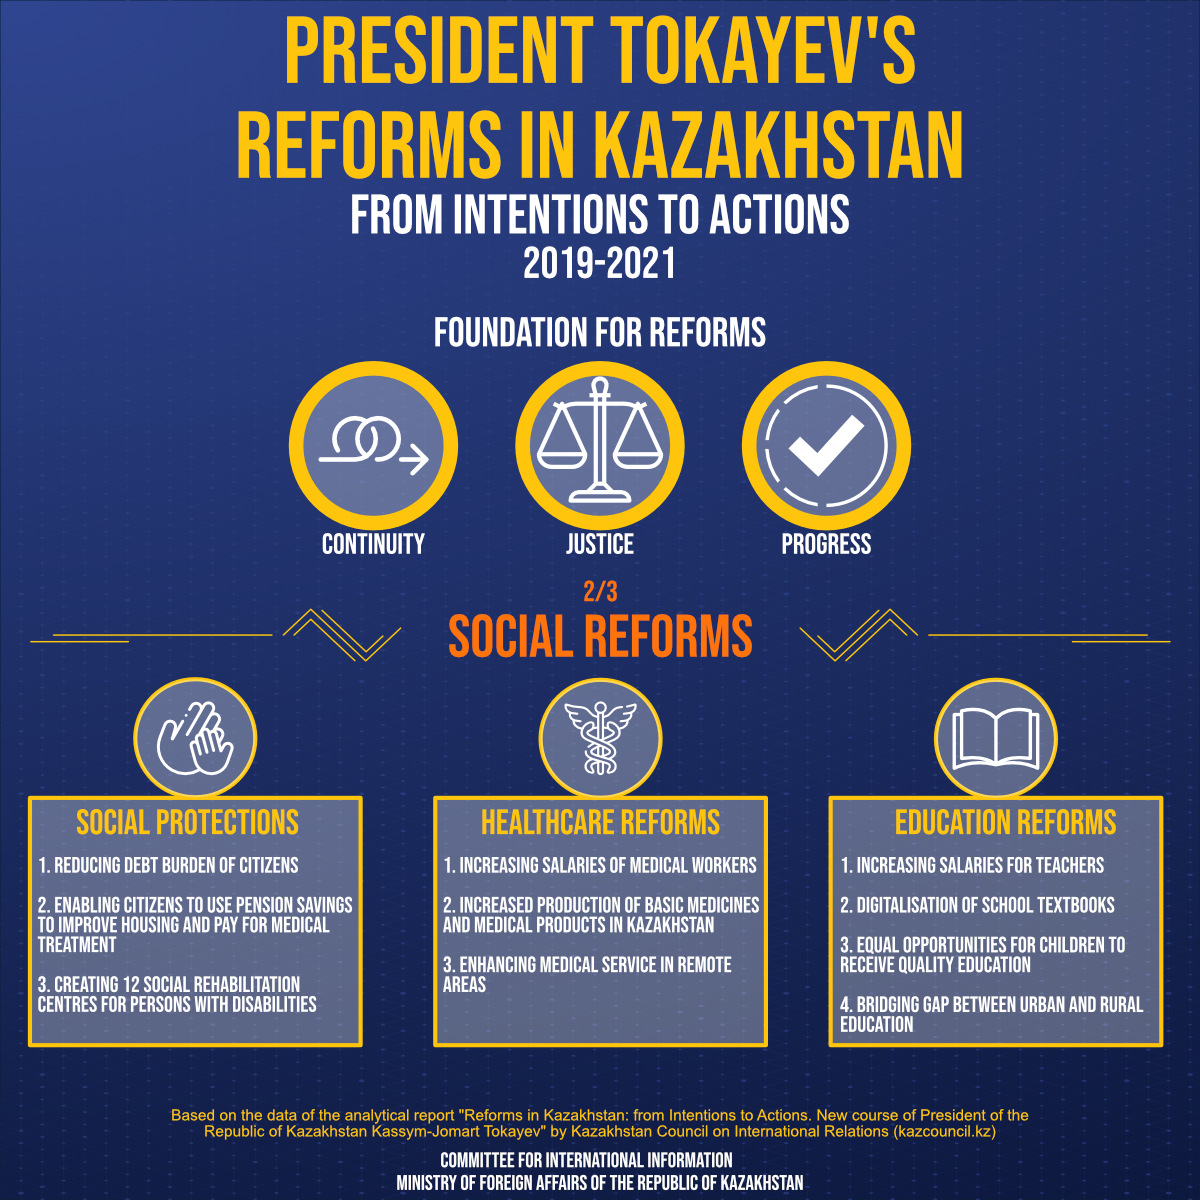 Social reforms of President of the Republic of Kazakhstan Kassym-Jomart Tokayev""